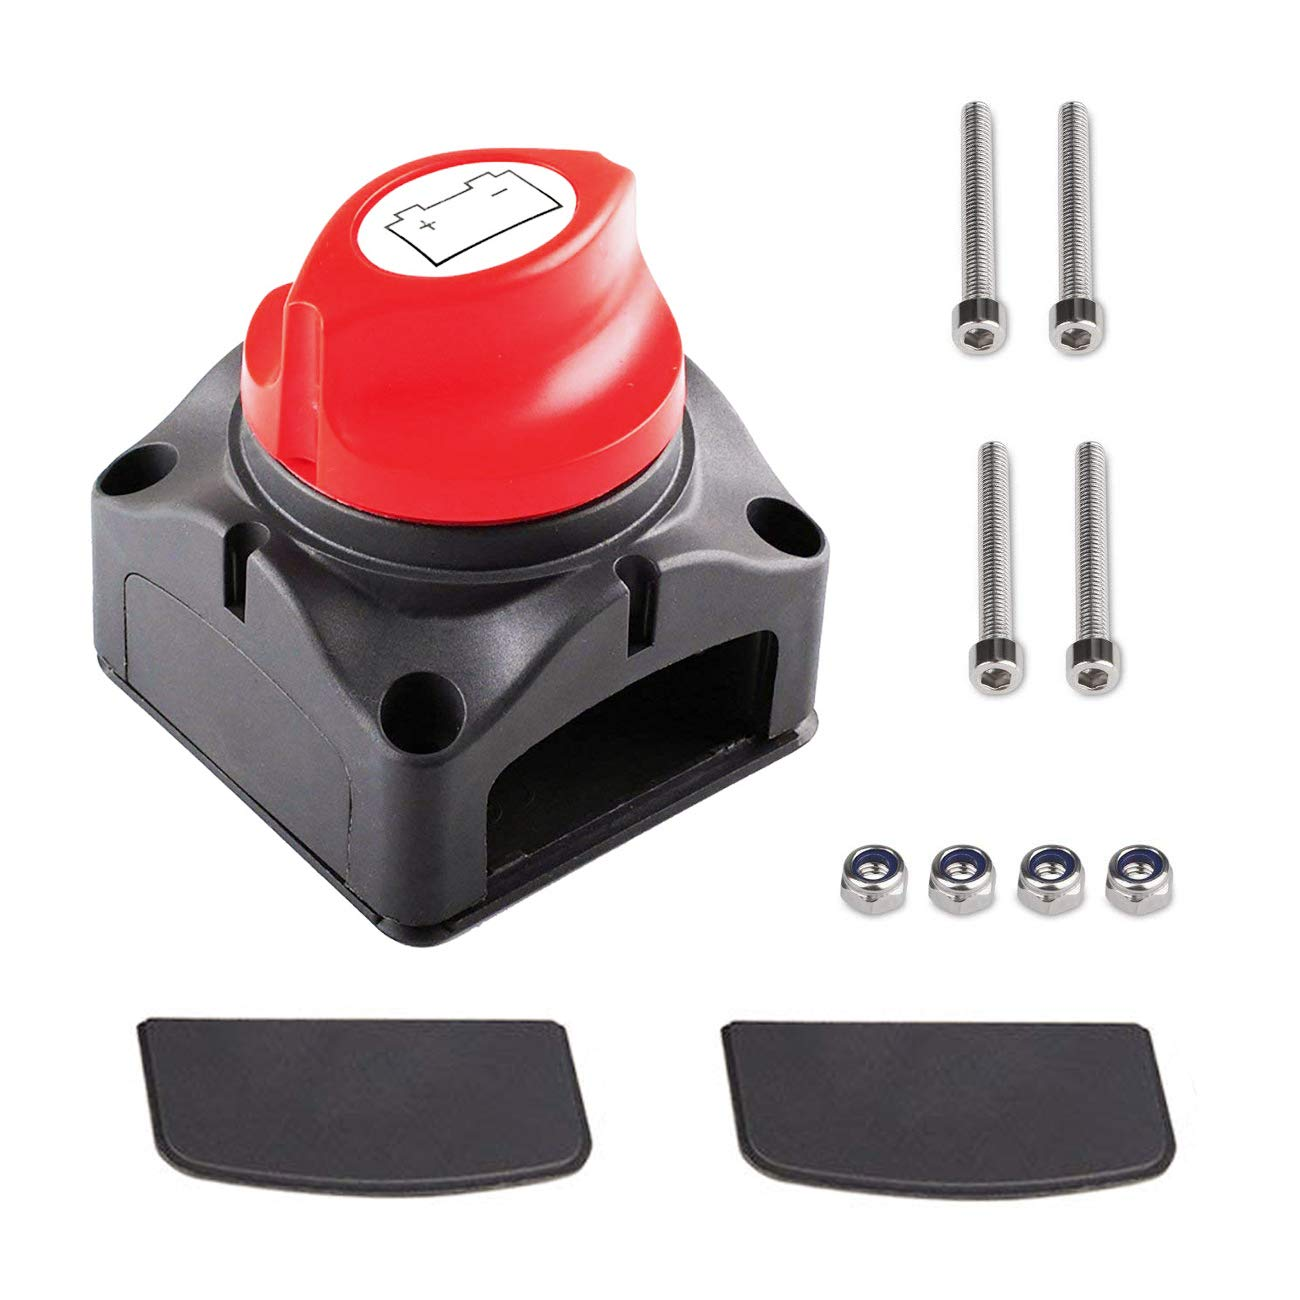 Momentary Rocker Toggle Switch 20A 125V 15A 250V SPDT 3 Terminal Pin ON/Off/ON DPDT Flick Metal Waterproof Cap Knob Pack of 3 by Wadoy 66-1850/66-5001